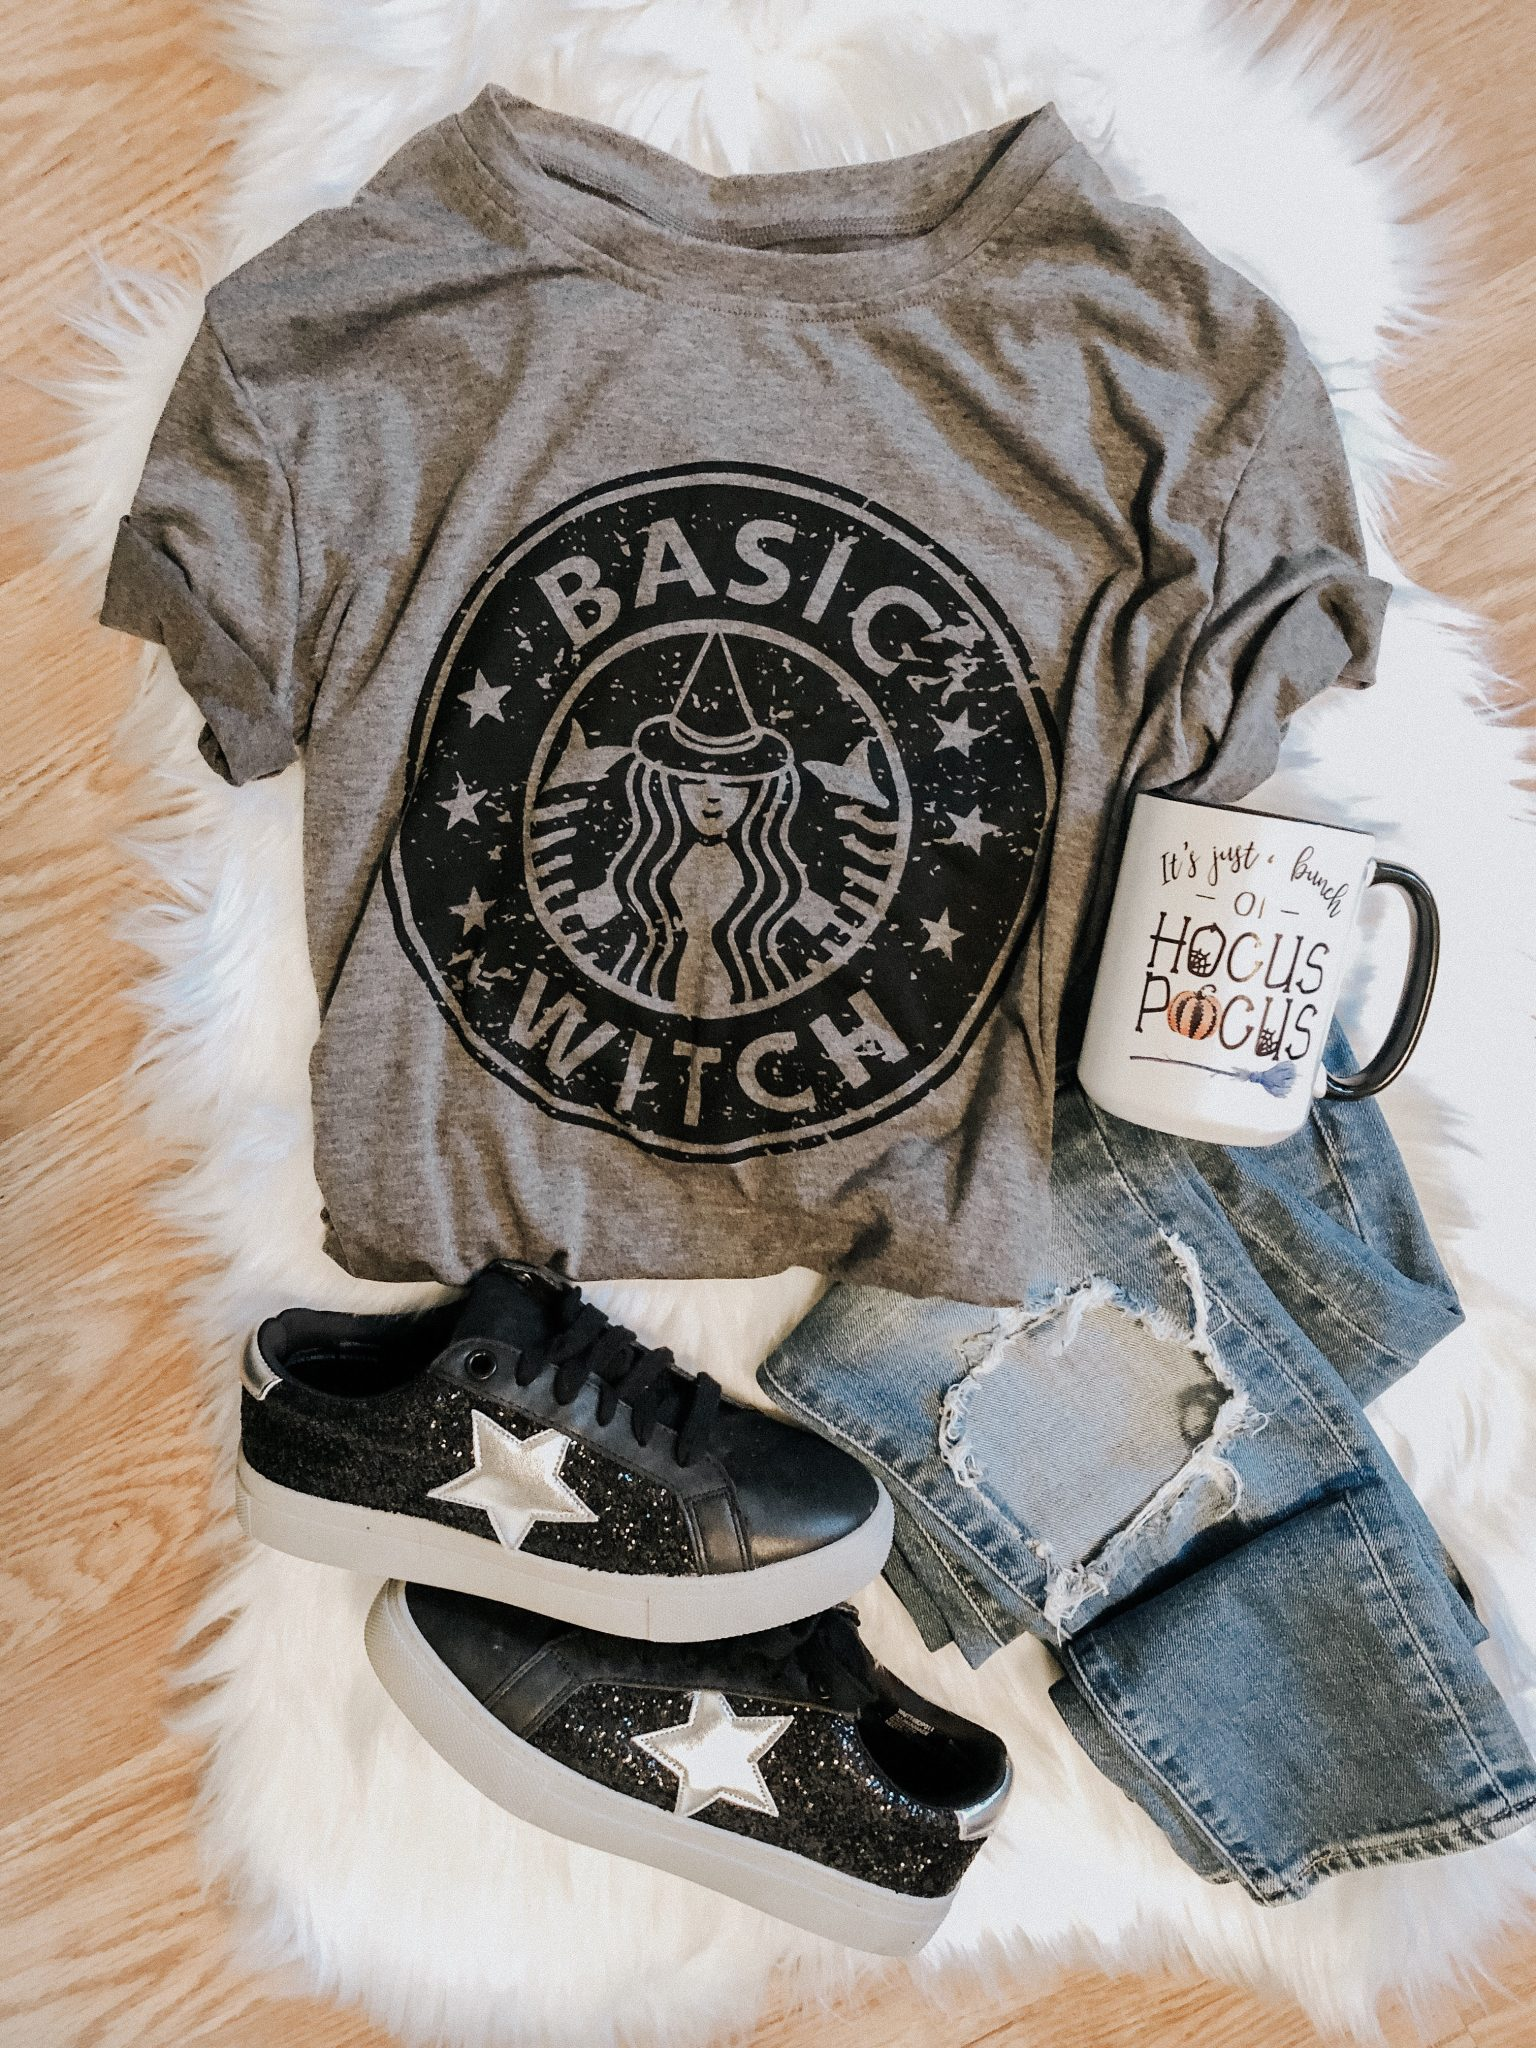 Halloween Decorating Ideas | Daily Splendor Life and Style Blog | #basicwitch #halloweenoutfit #halloweenideas #halloweenshirt